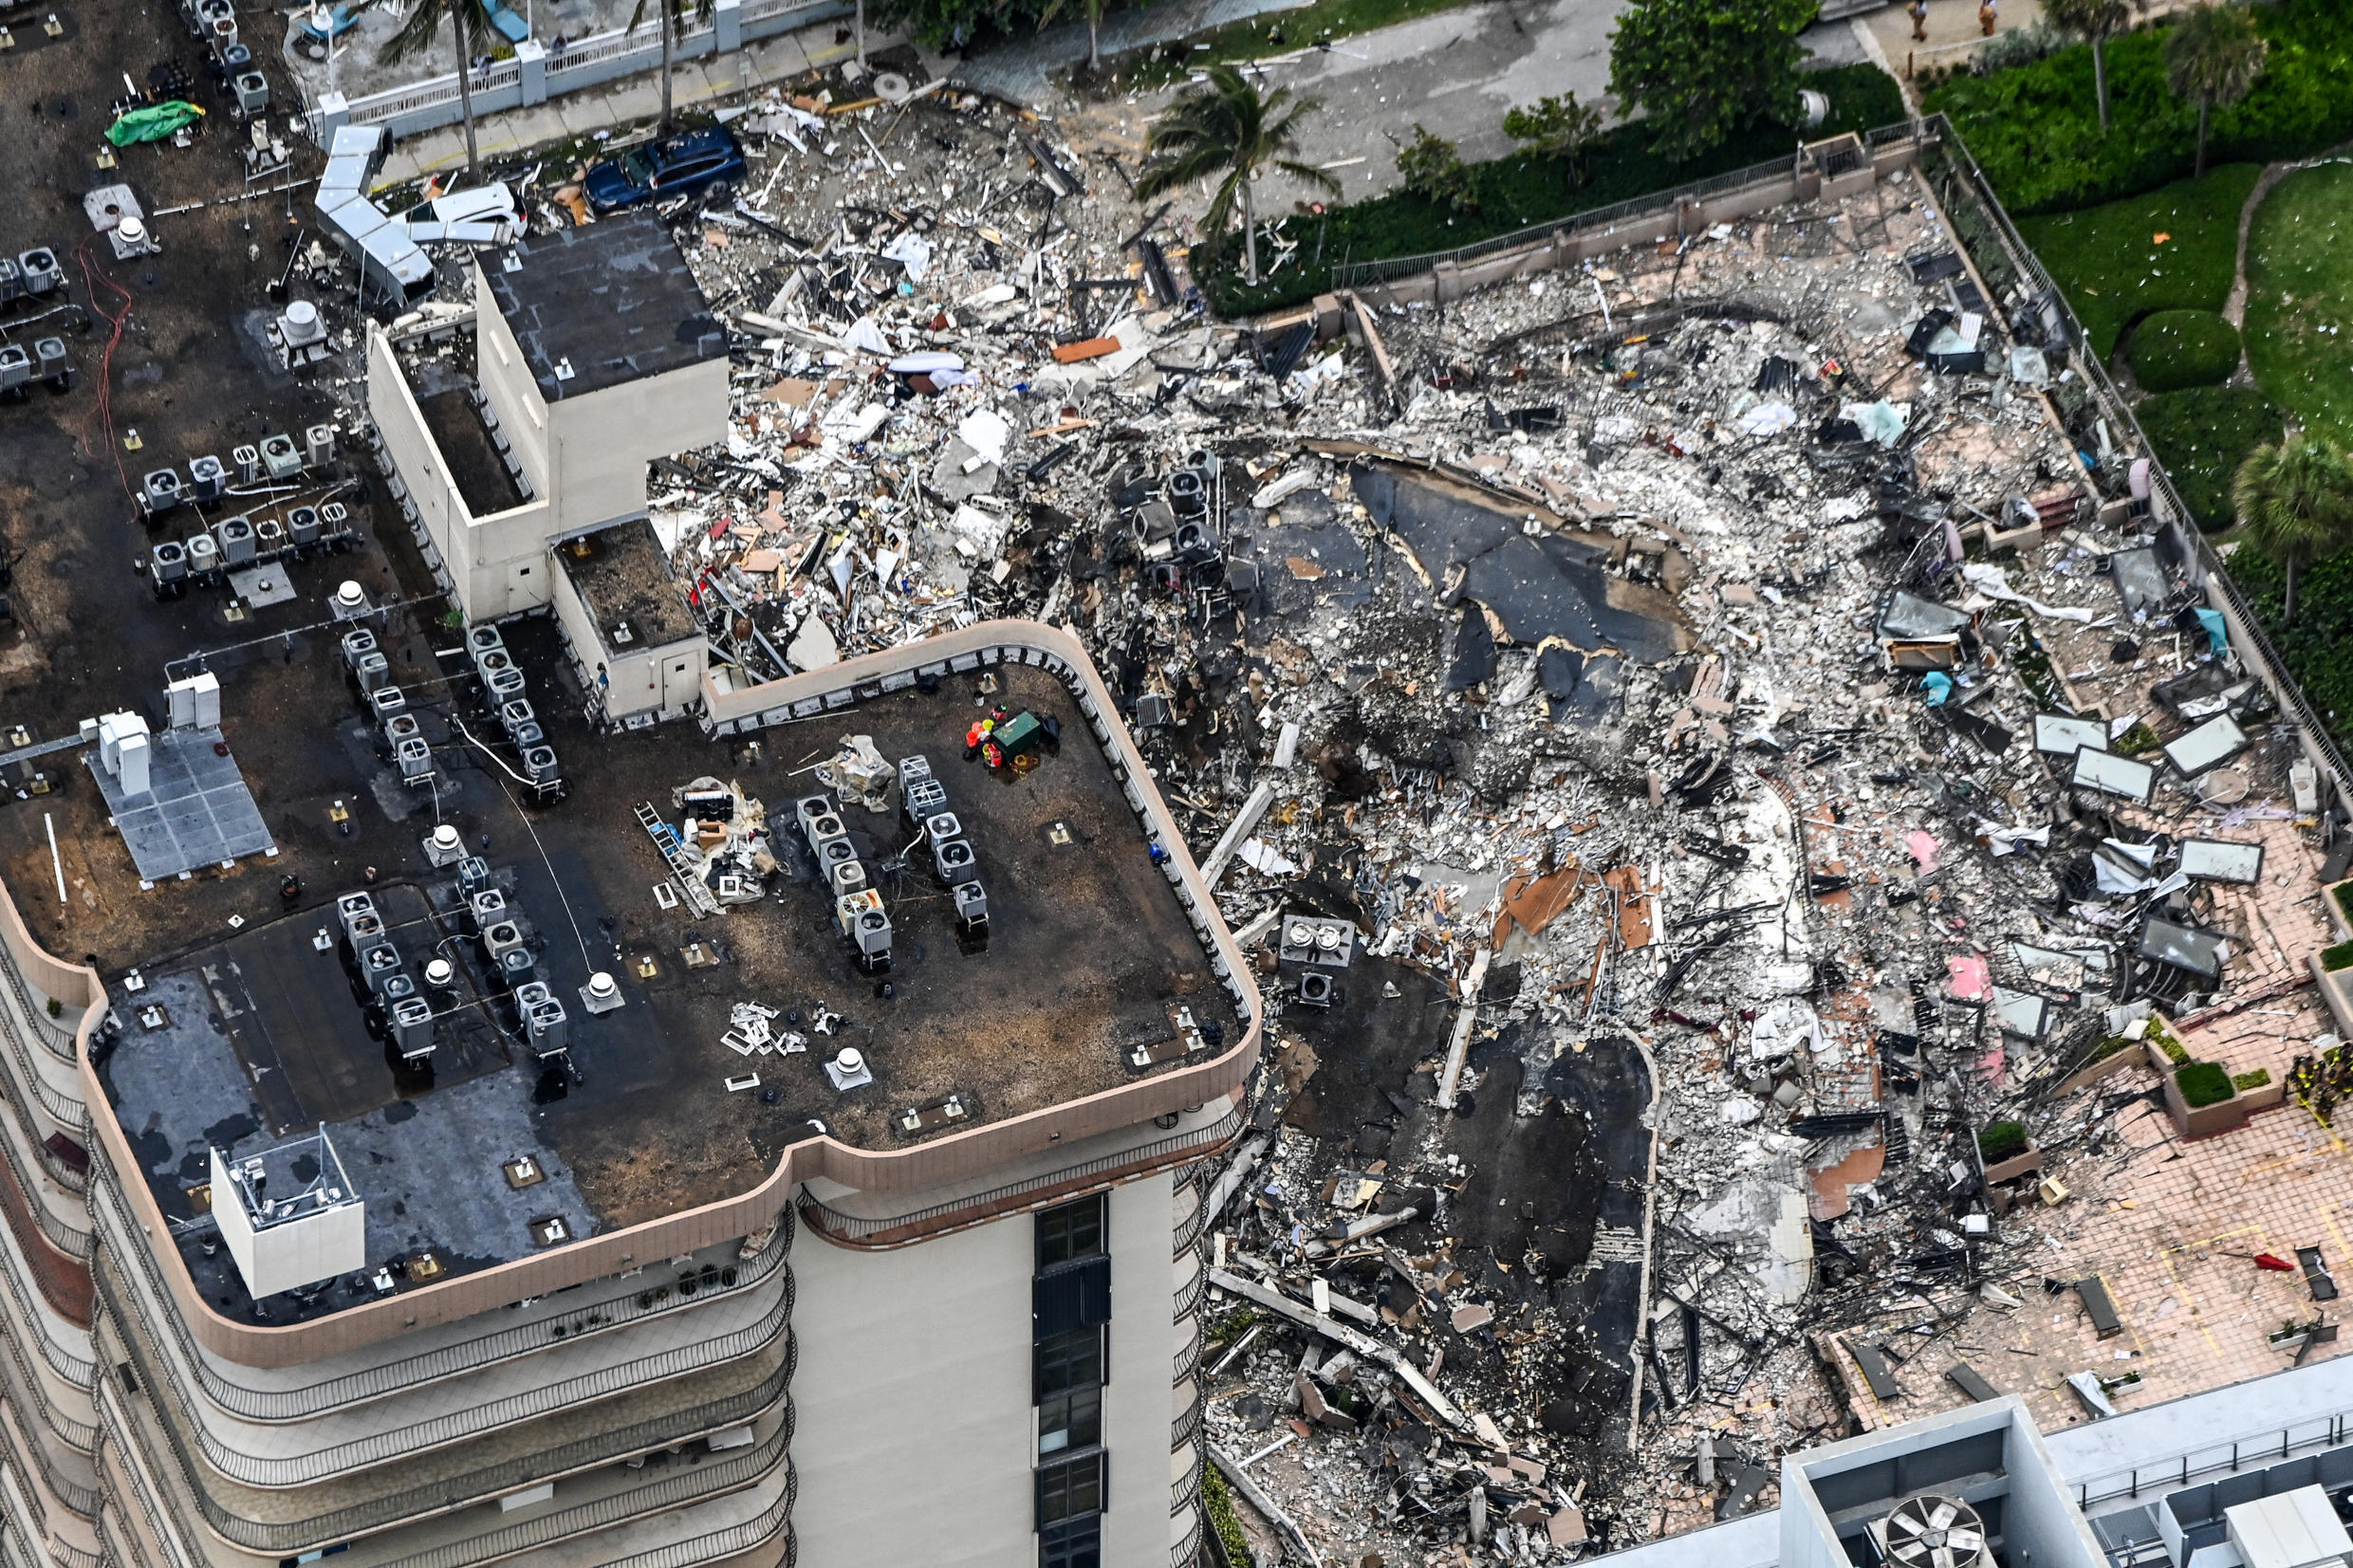 Search and rescue personnel working on site after the partial collapse of Champlain Towers in Surfside, Florida